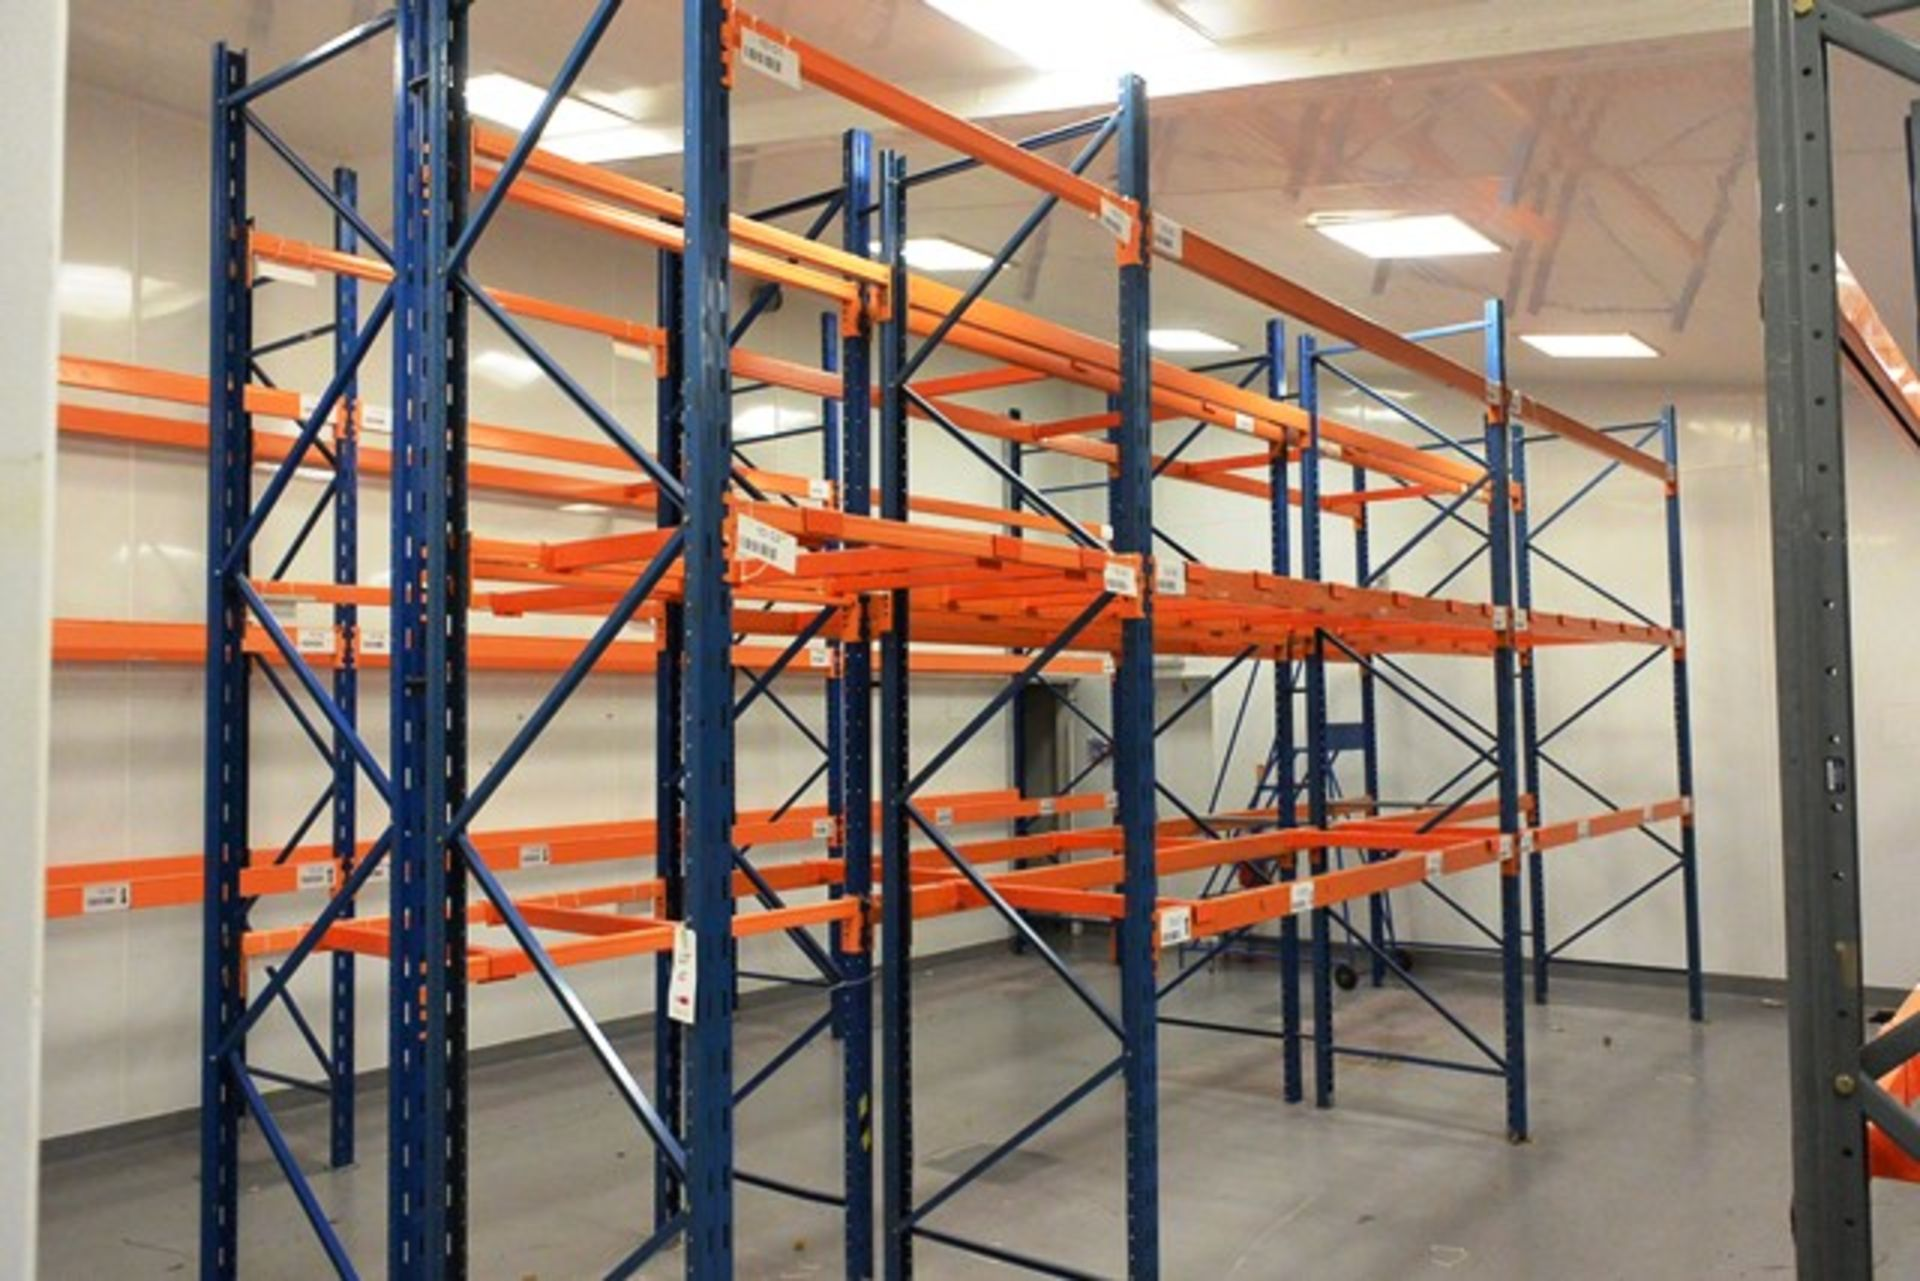 Six bays of adjustable boltless pallet racking, approx height 3400mm, 4 x bays 2750mm width, 2 x